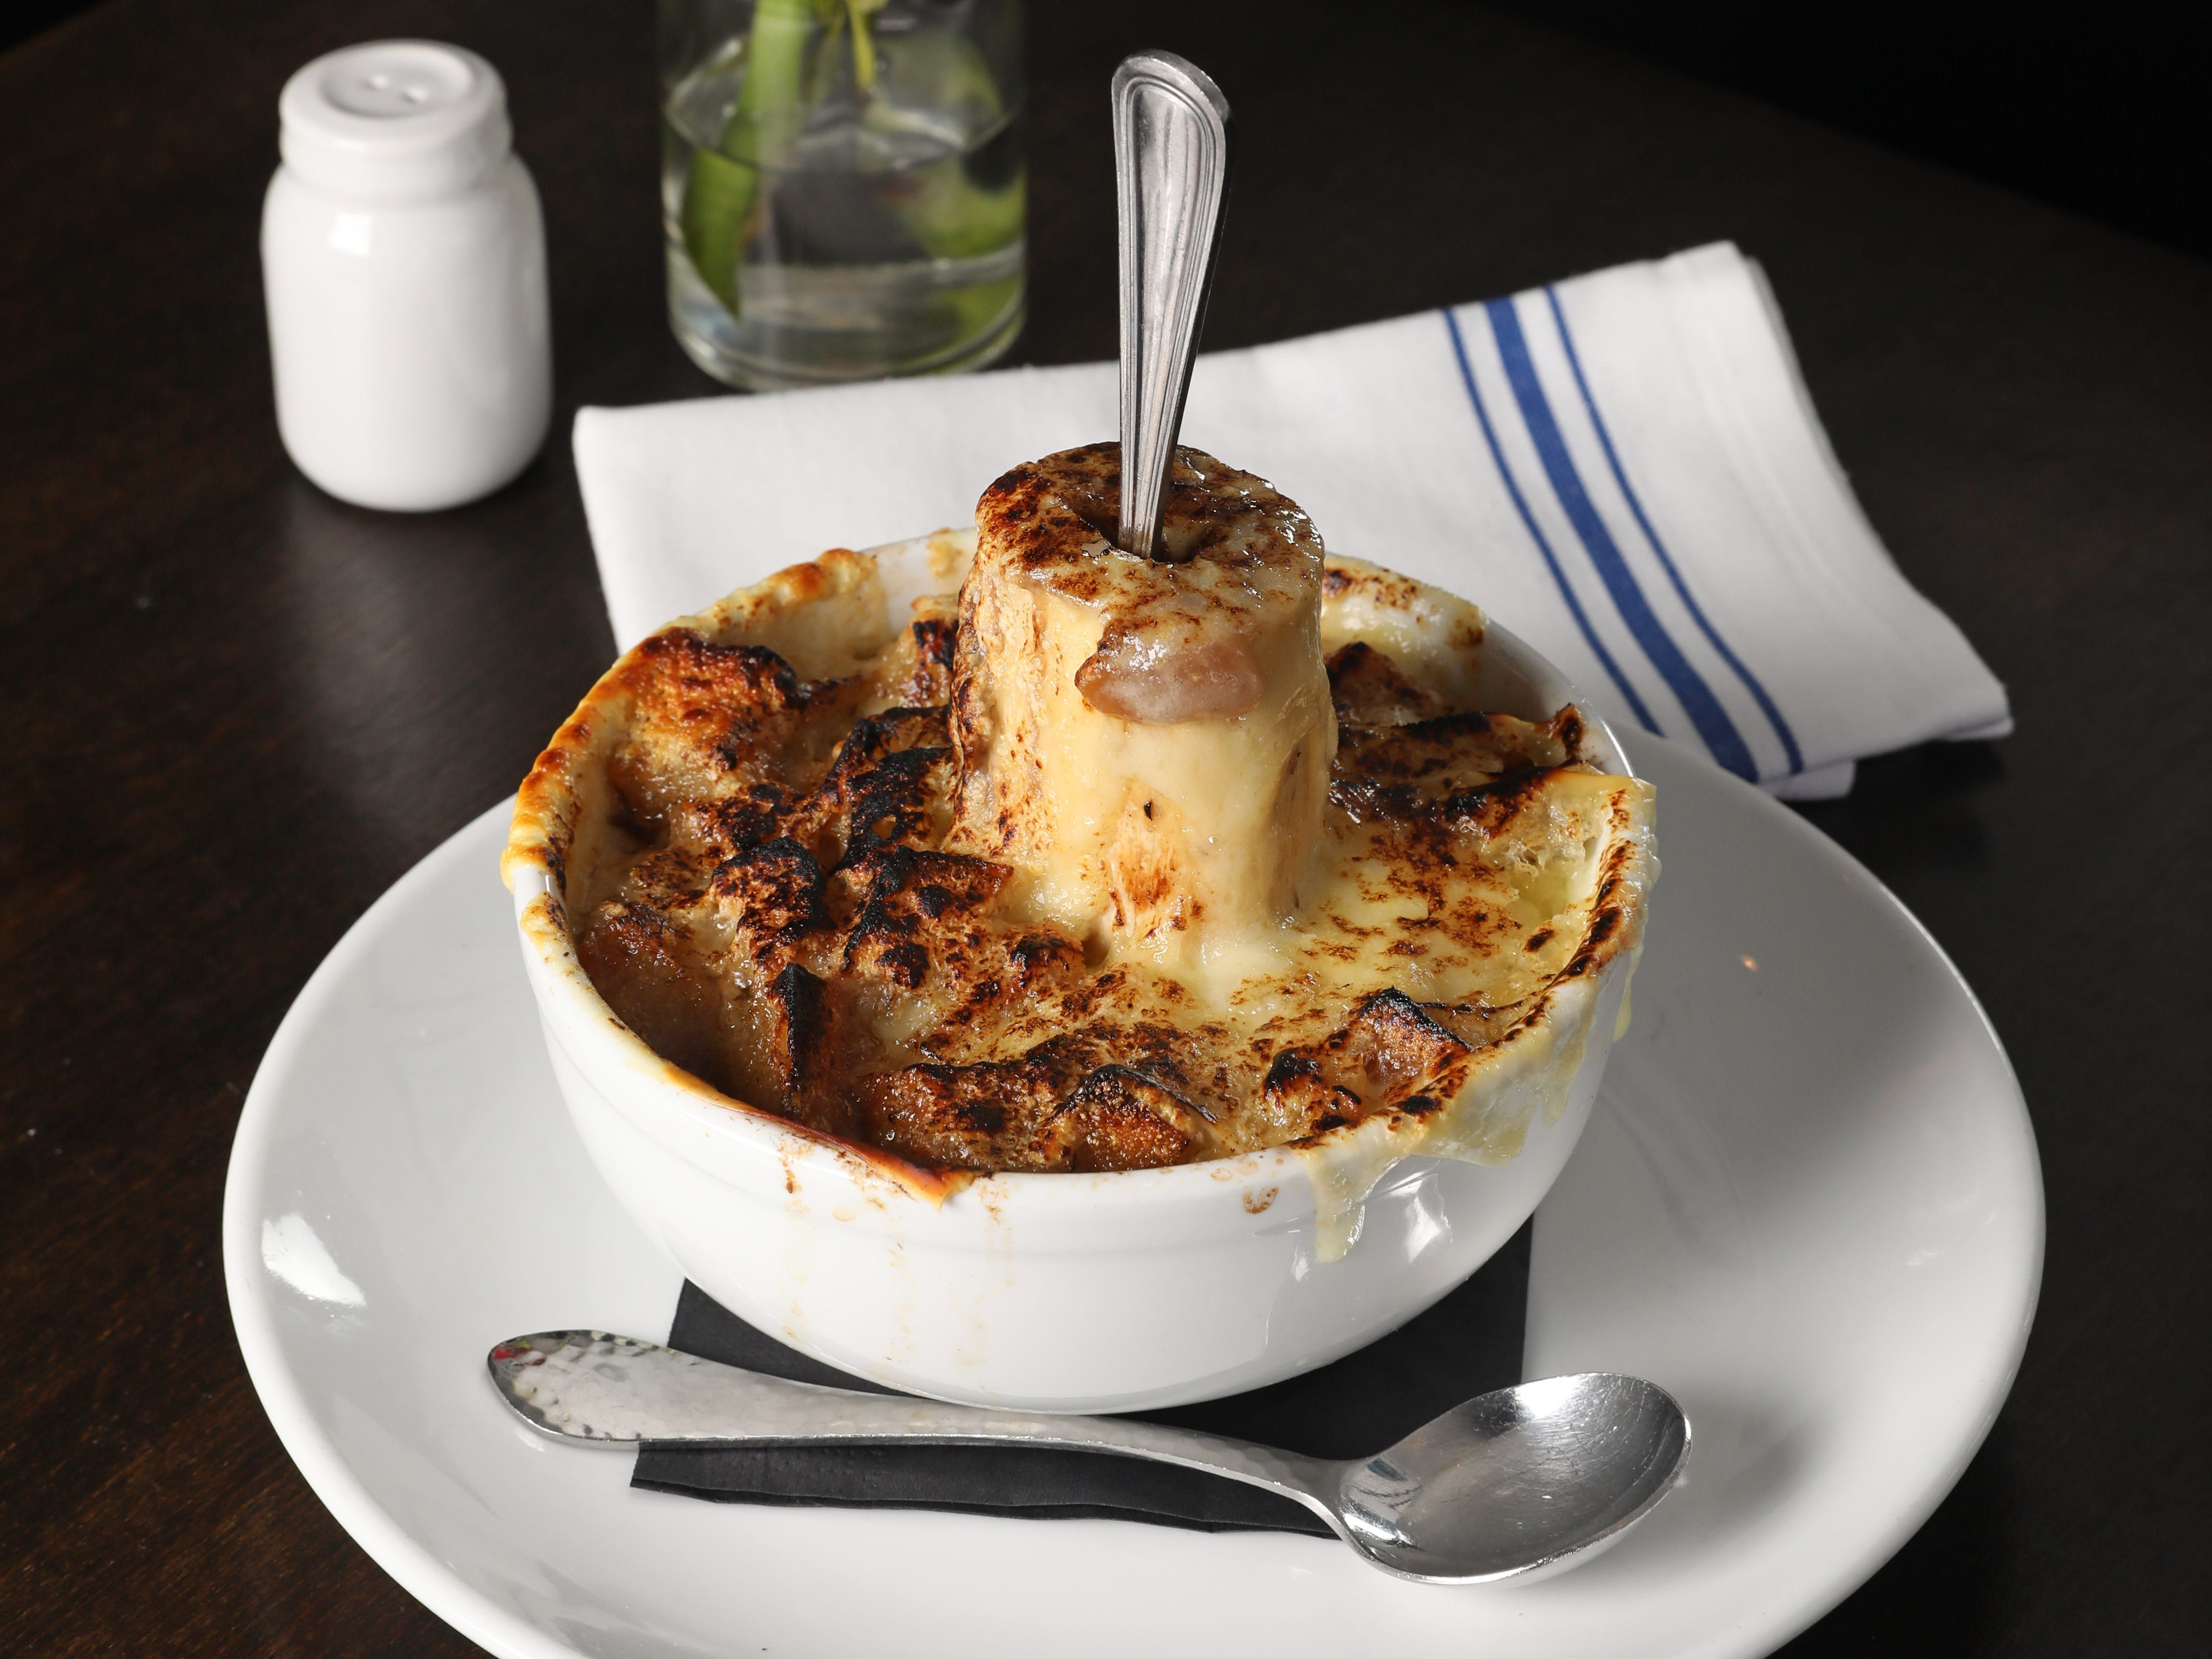 French onion soup with marrow bone by chef Matthew Safarowic at The Whitlock in Katonah March 14, 2019.